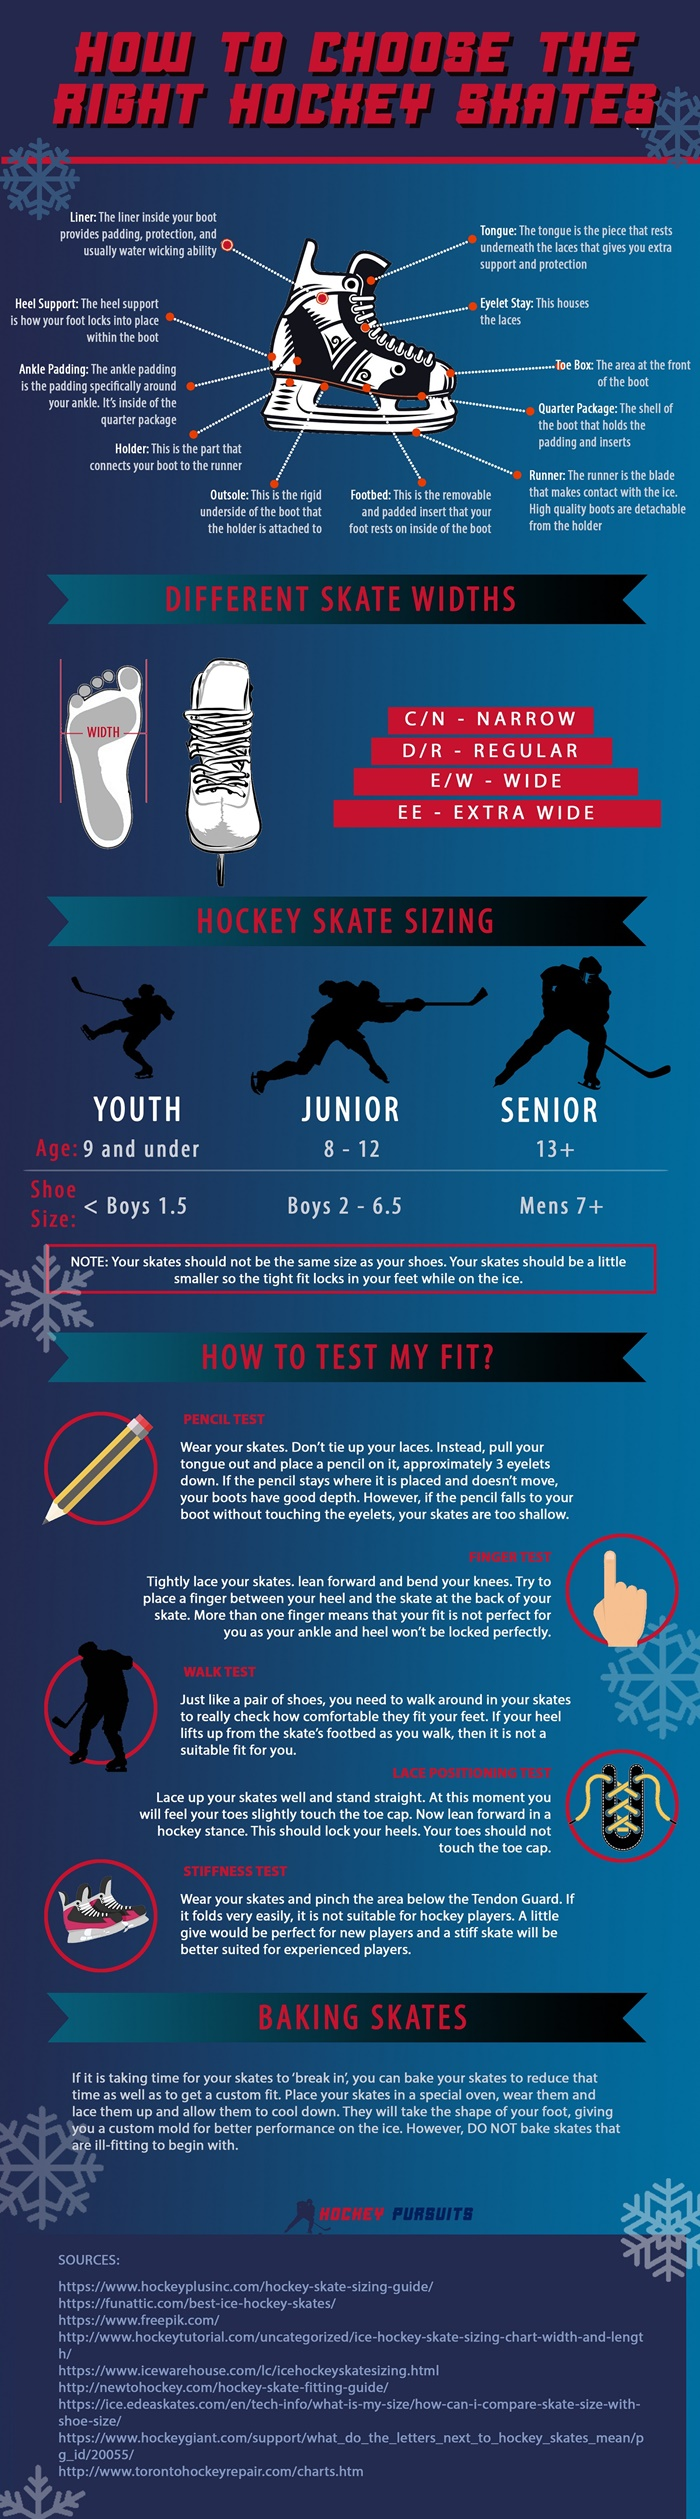 How To Choose The Right Hockey Skates